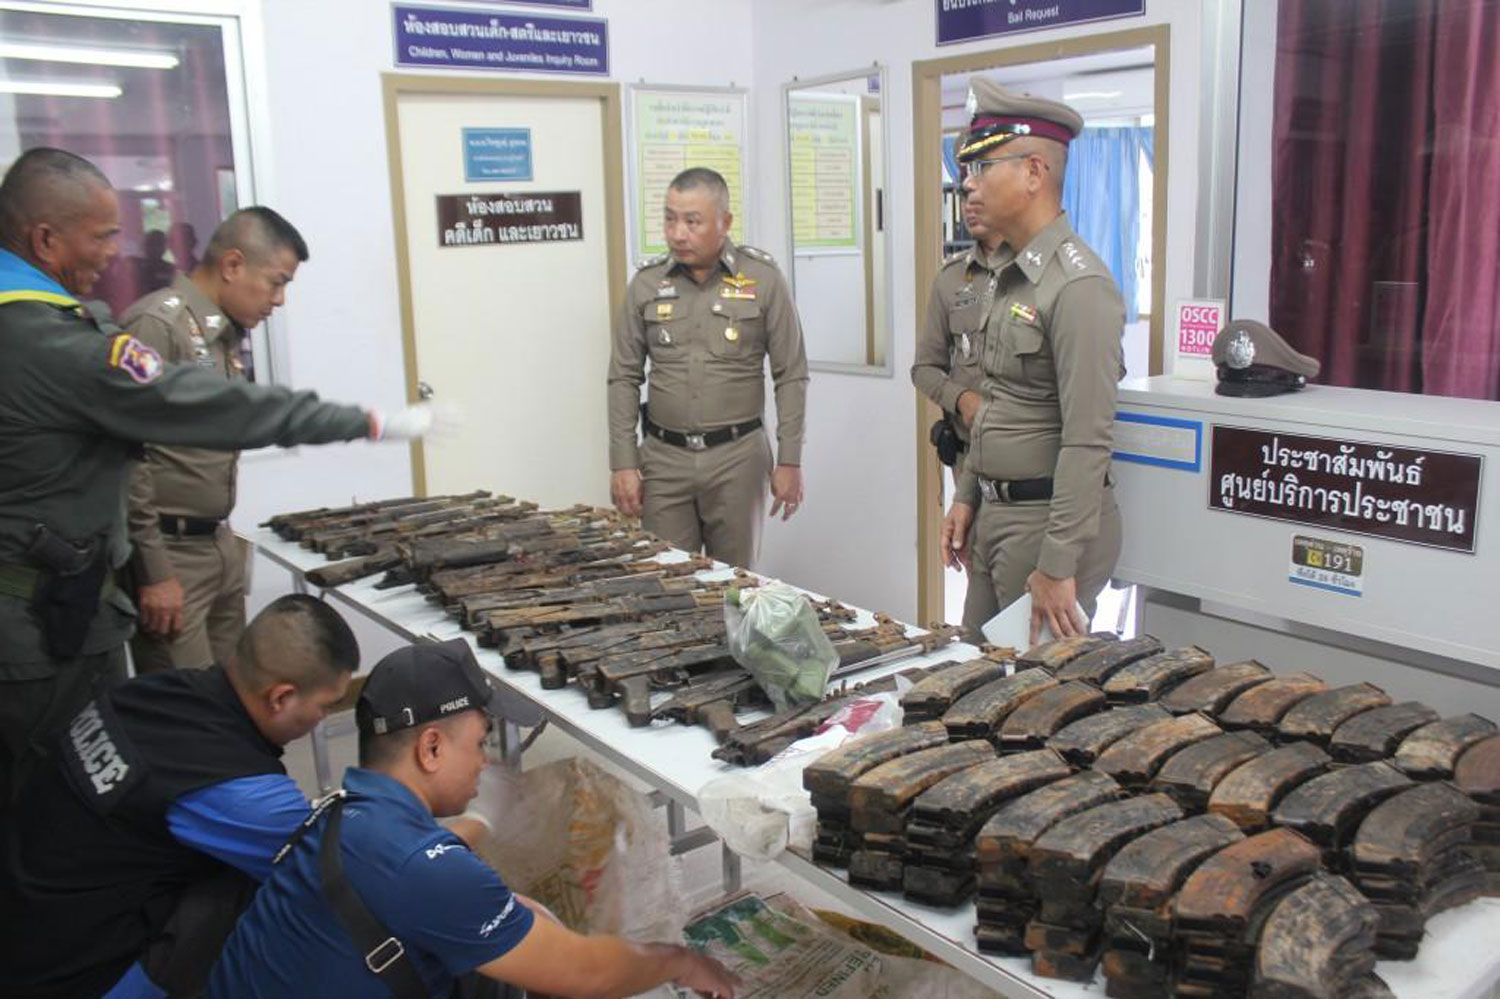 Police examine a cache of AKA assault rifles and magazines at the Phu Sing police station in Surin province on Monday. (Photo by Noparat Kingkaew)